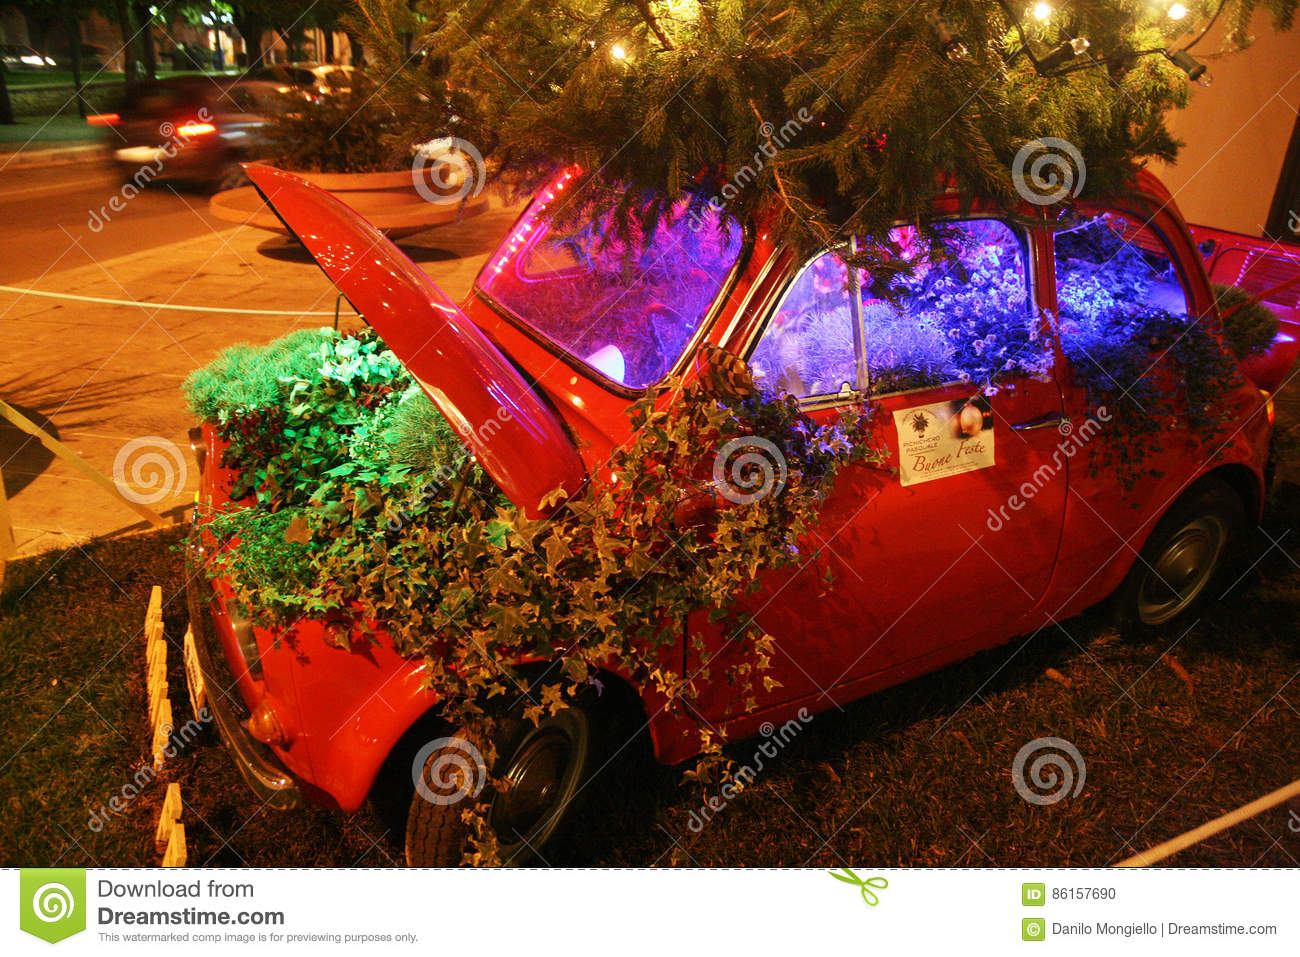 Fiat Wuppertal Christmas Car Editorial Image Image Of Delle Decorated 86157690